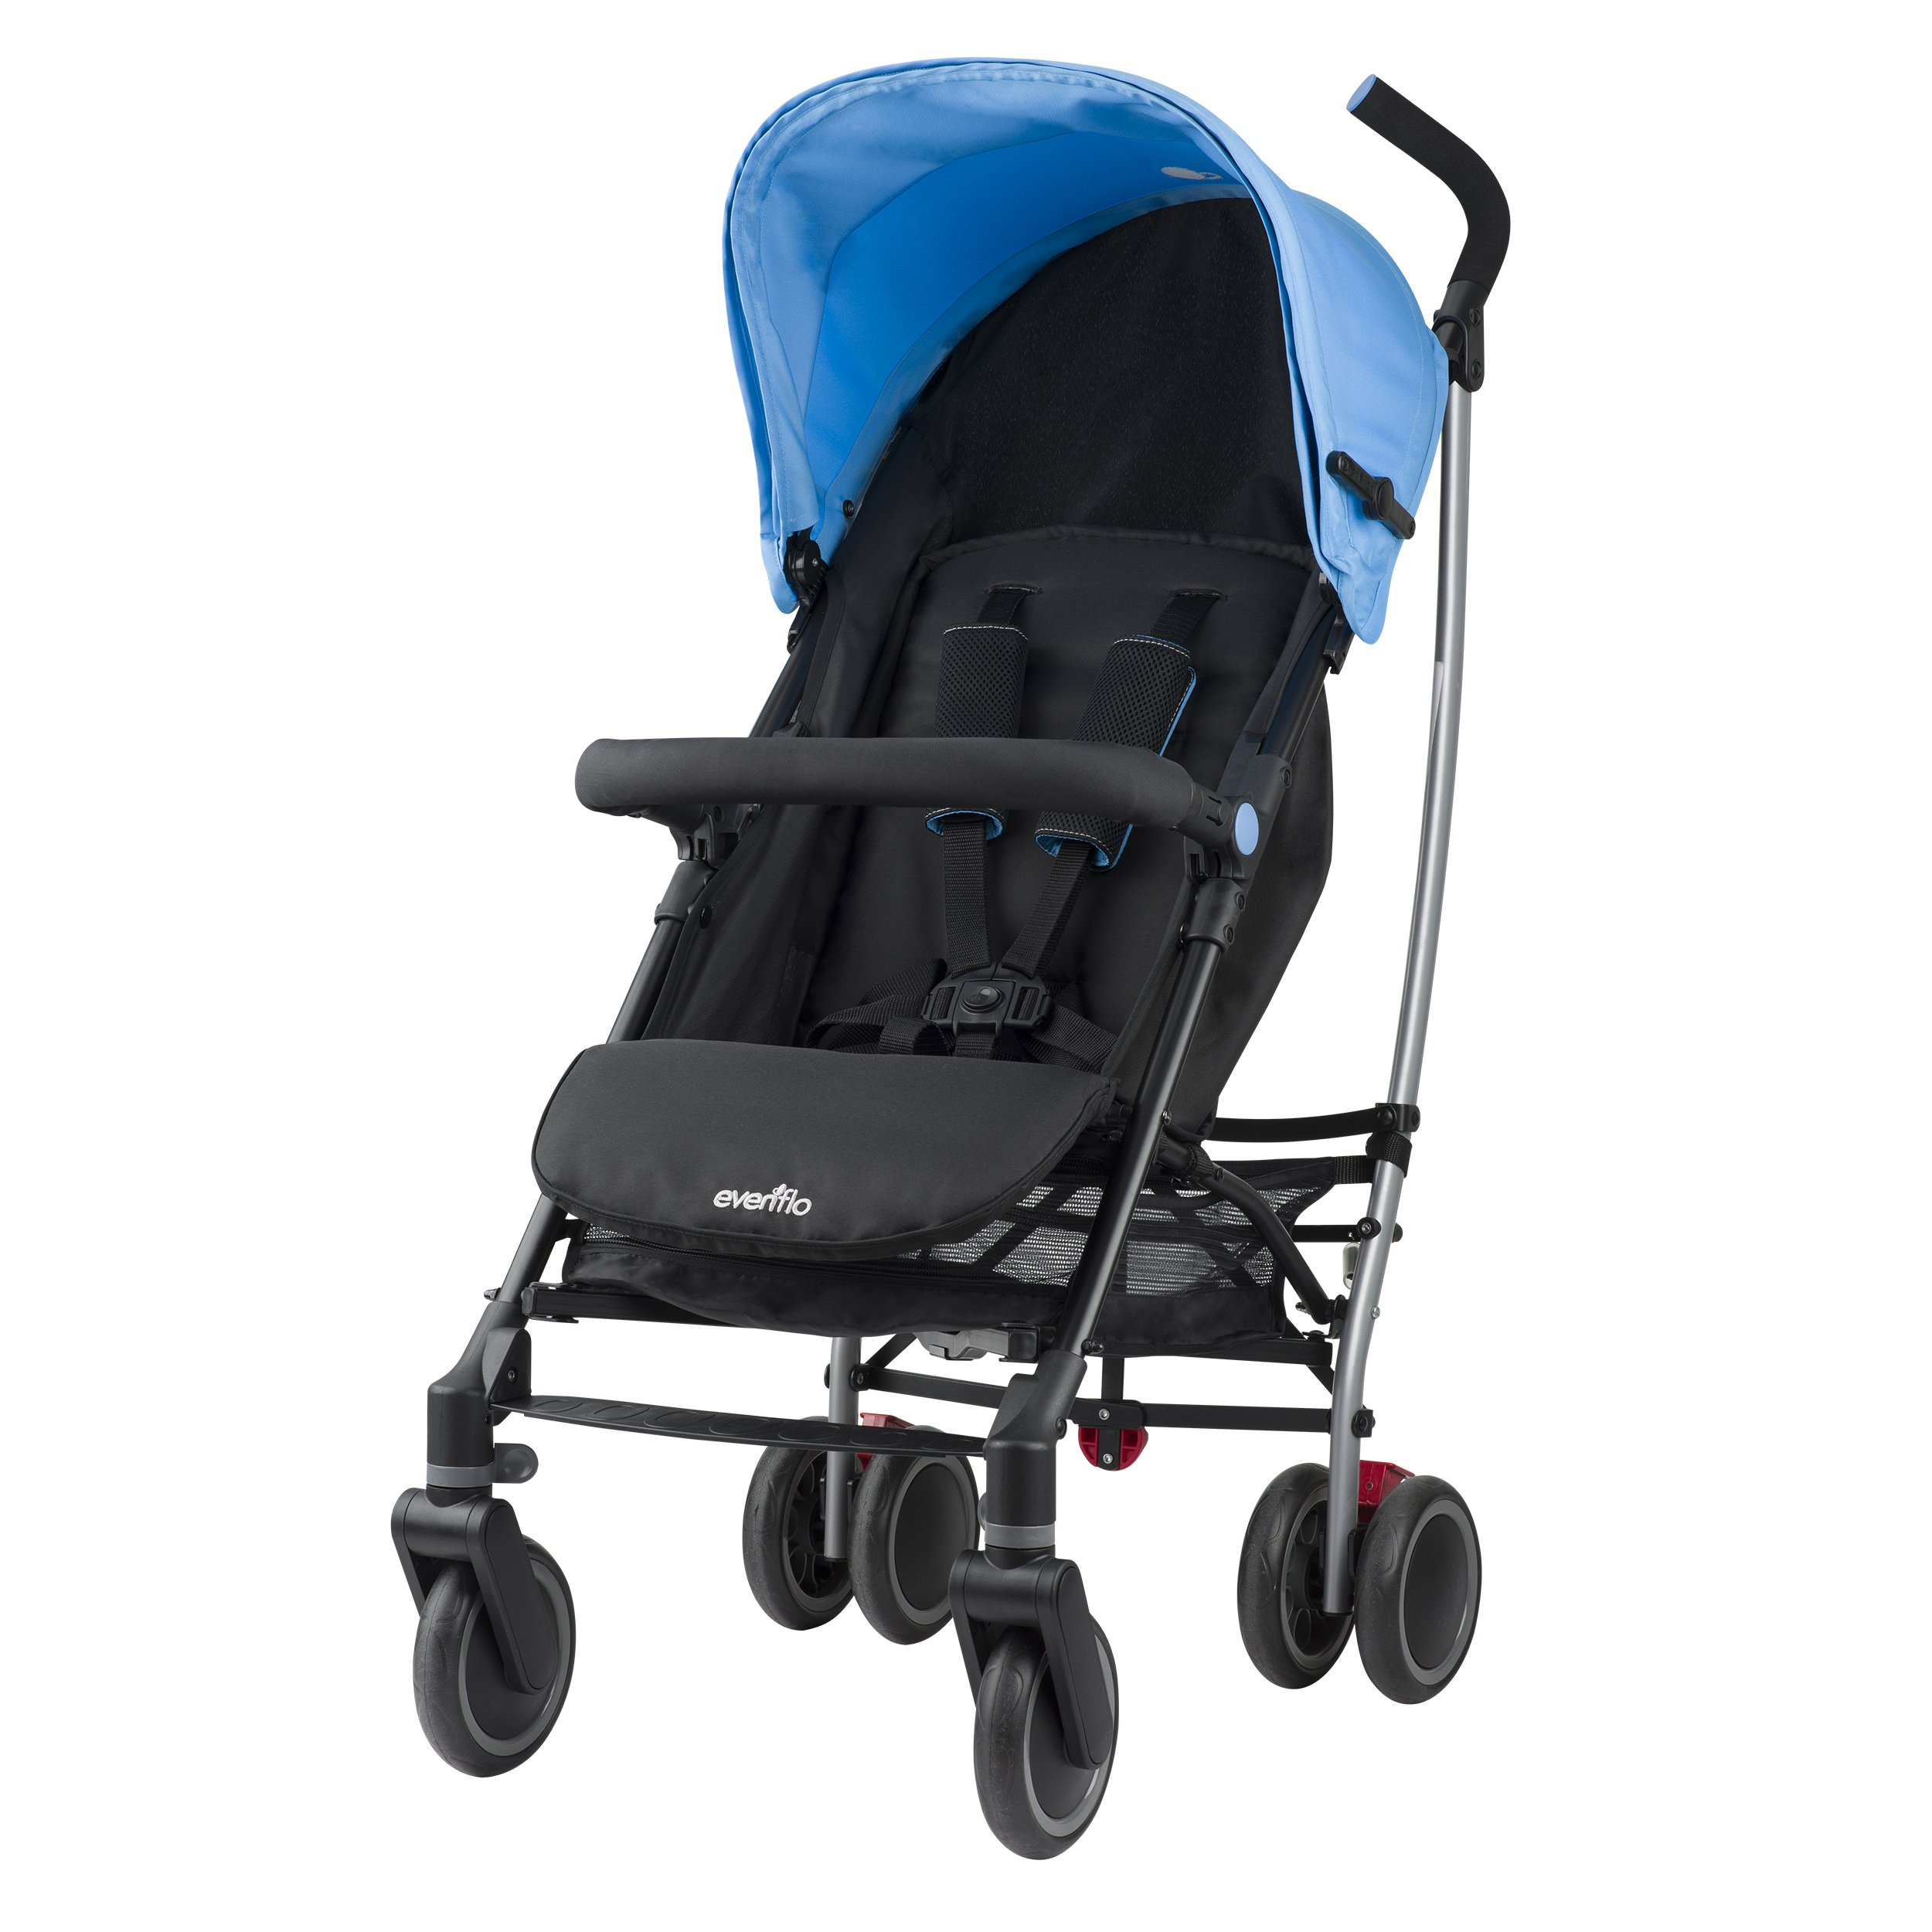 Evenflo Cambridge Stroller, Sky Blue by Evenflo (Image #2)